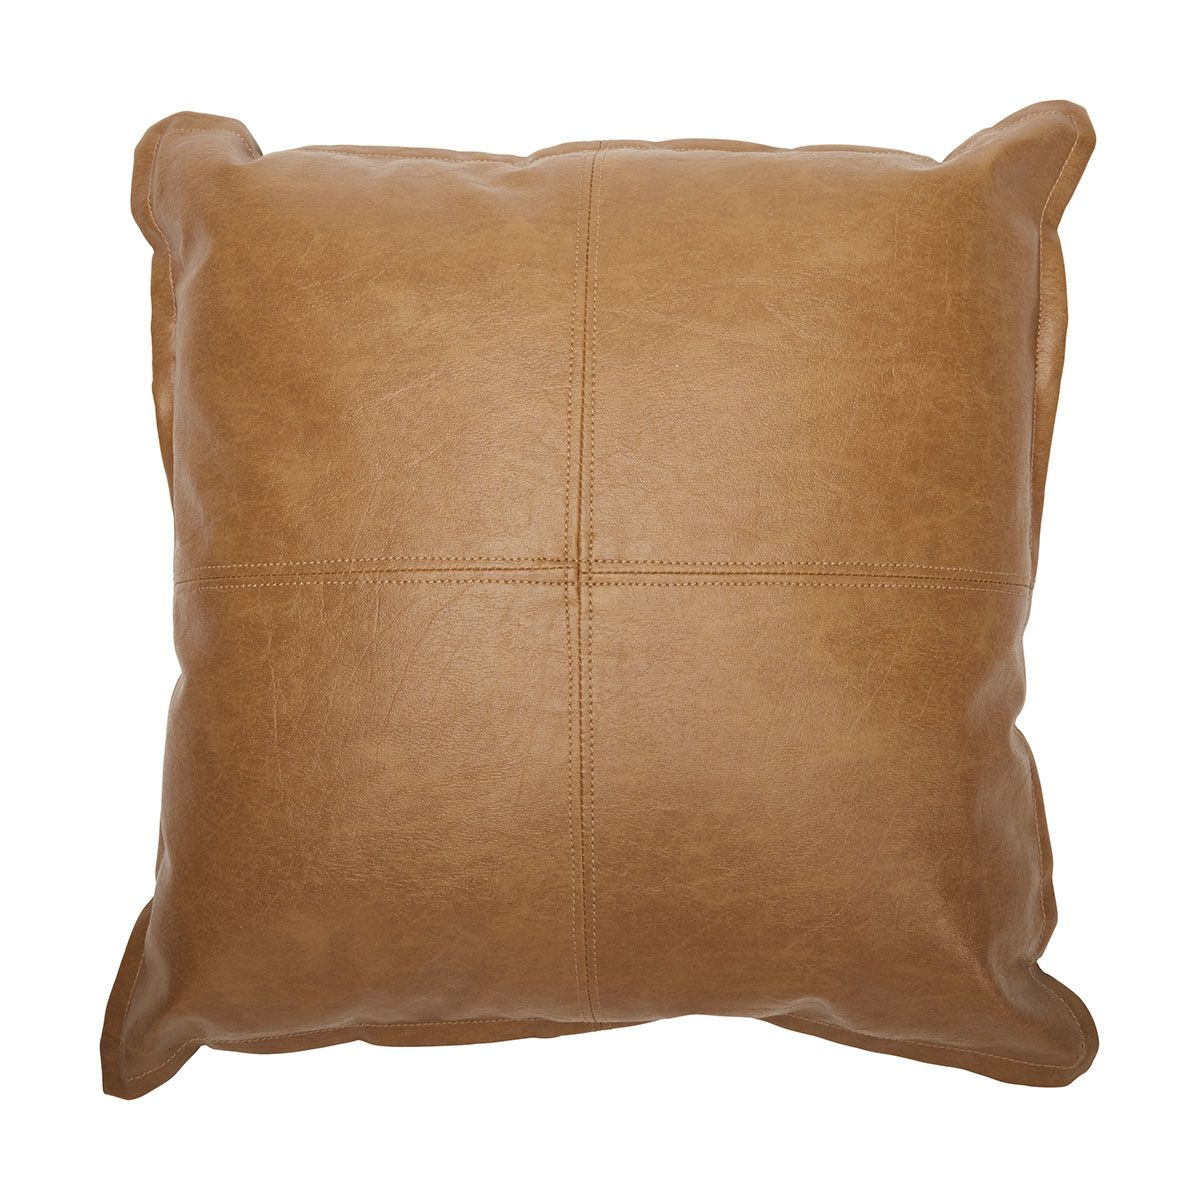 Harley Cushion Tan KmartNZ Tan leather cushion